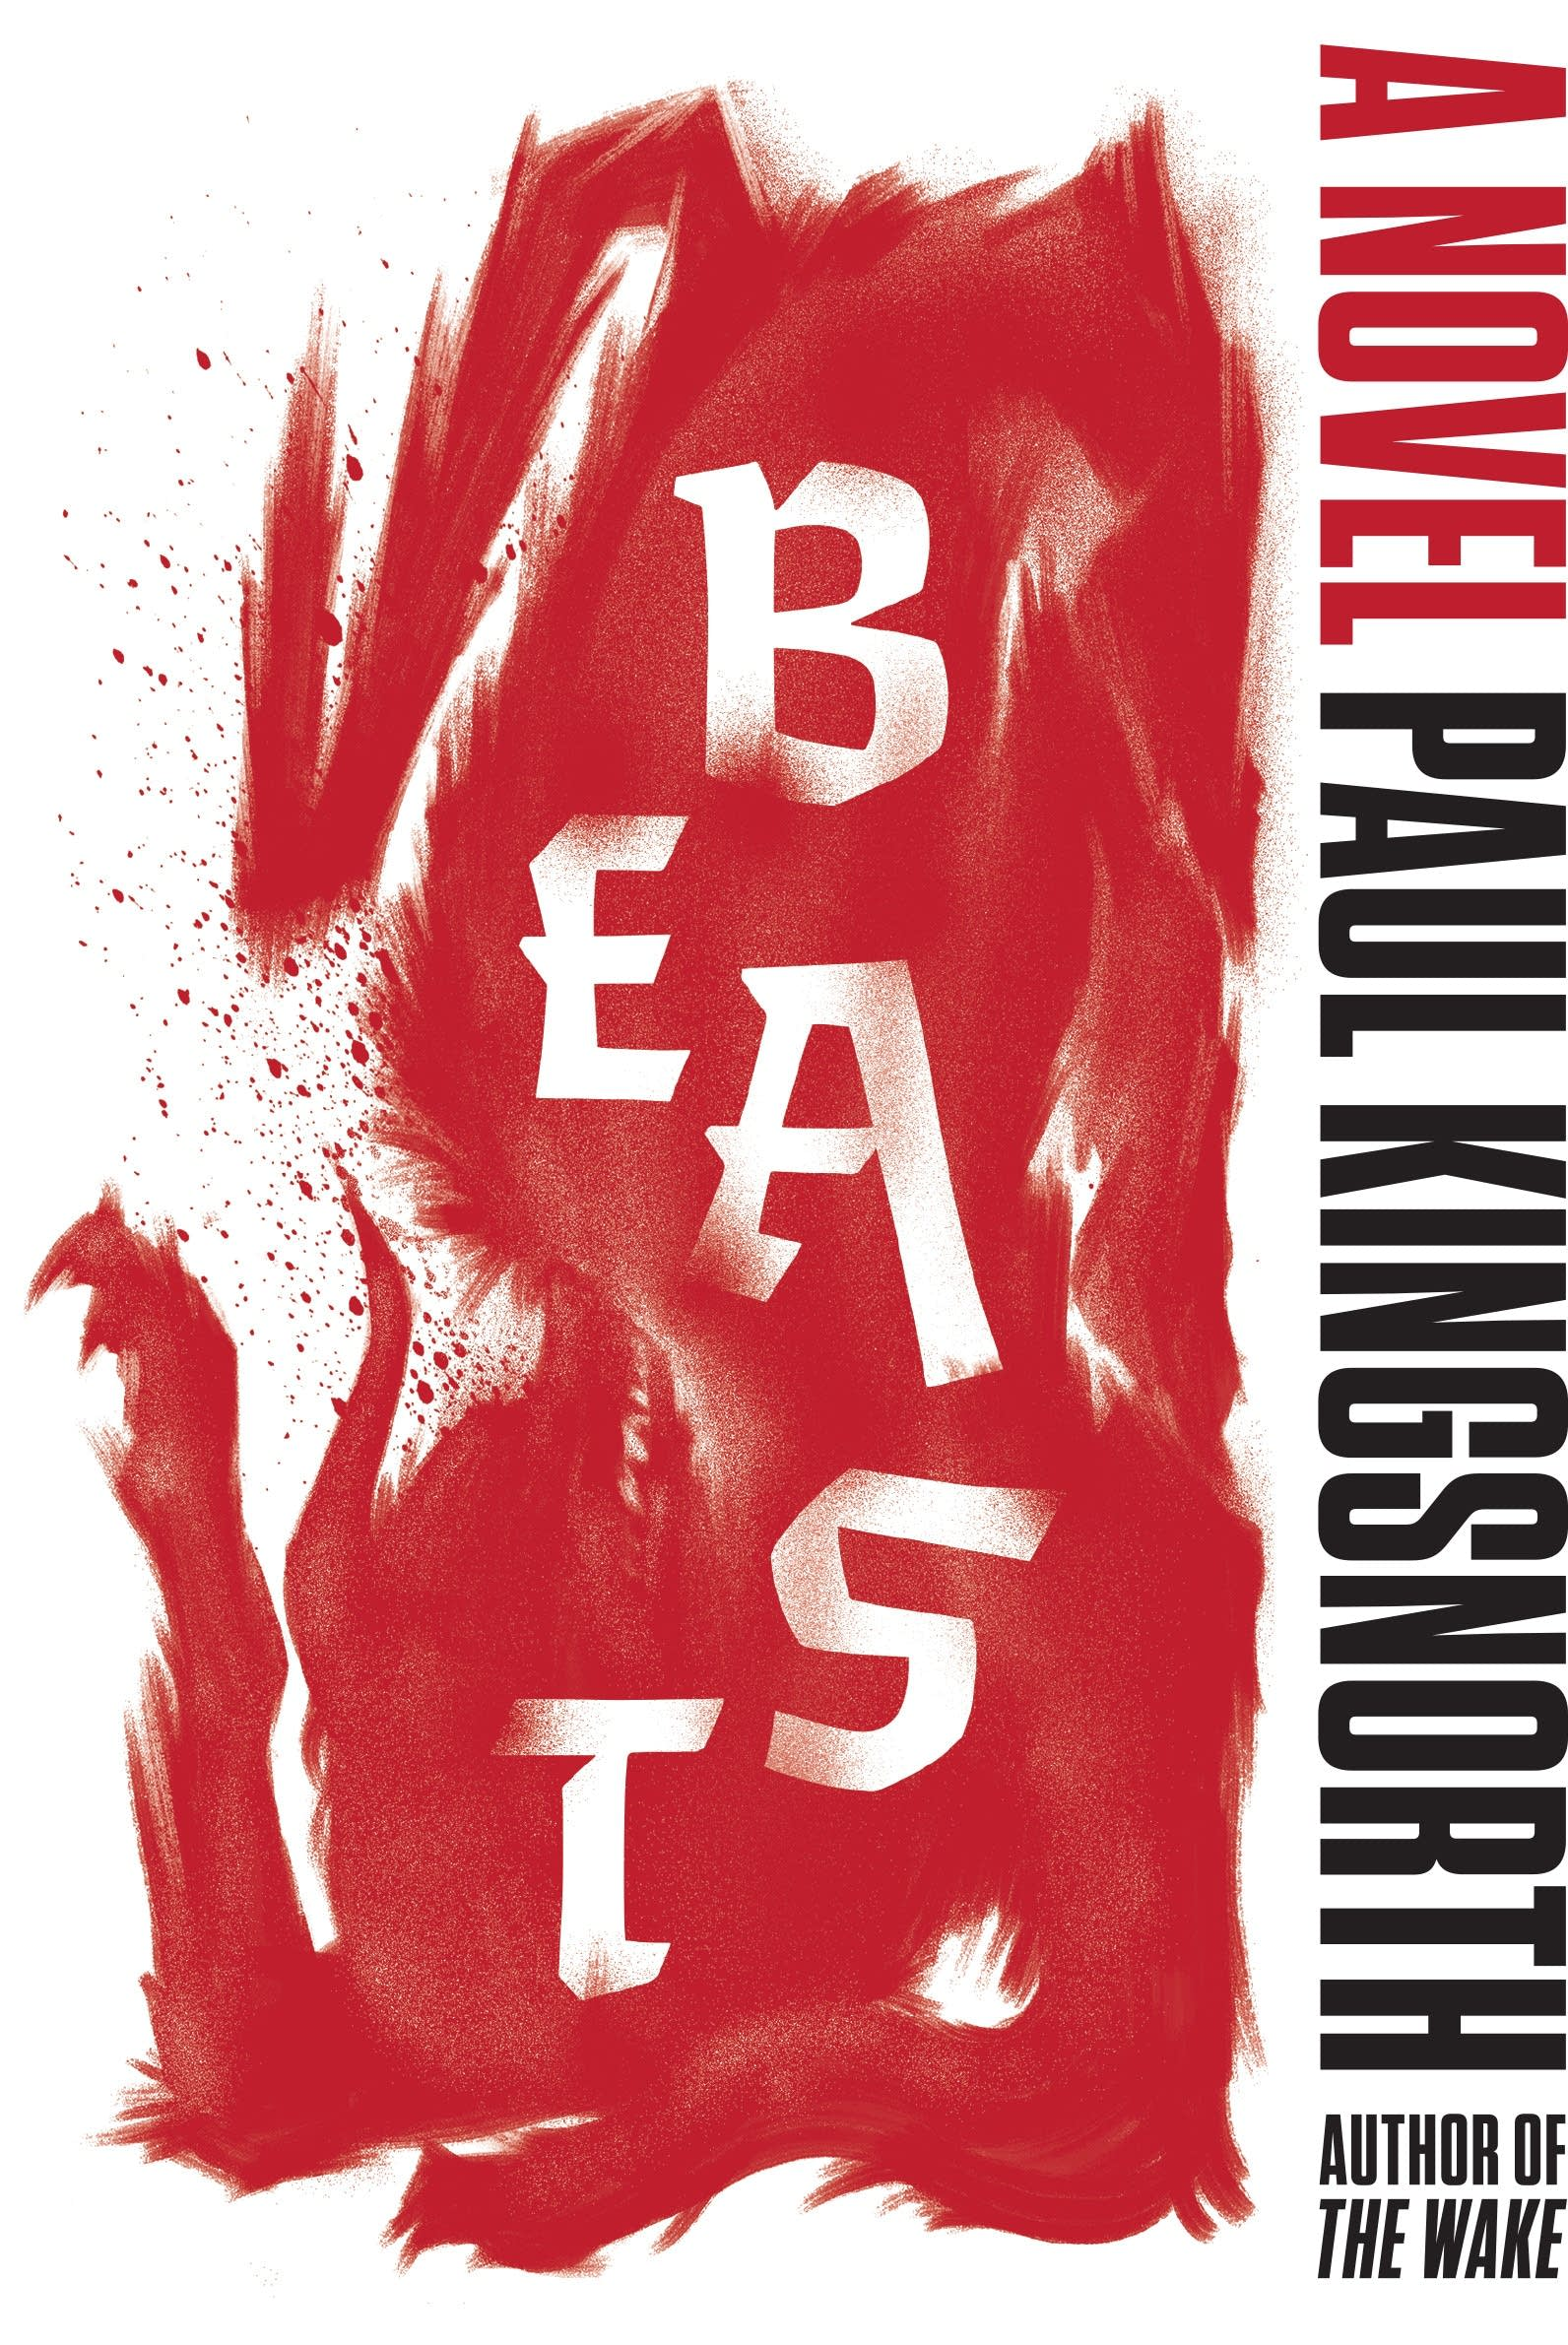 Beast. by Paul Kingsnorth